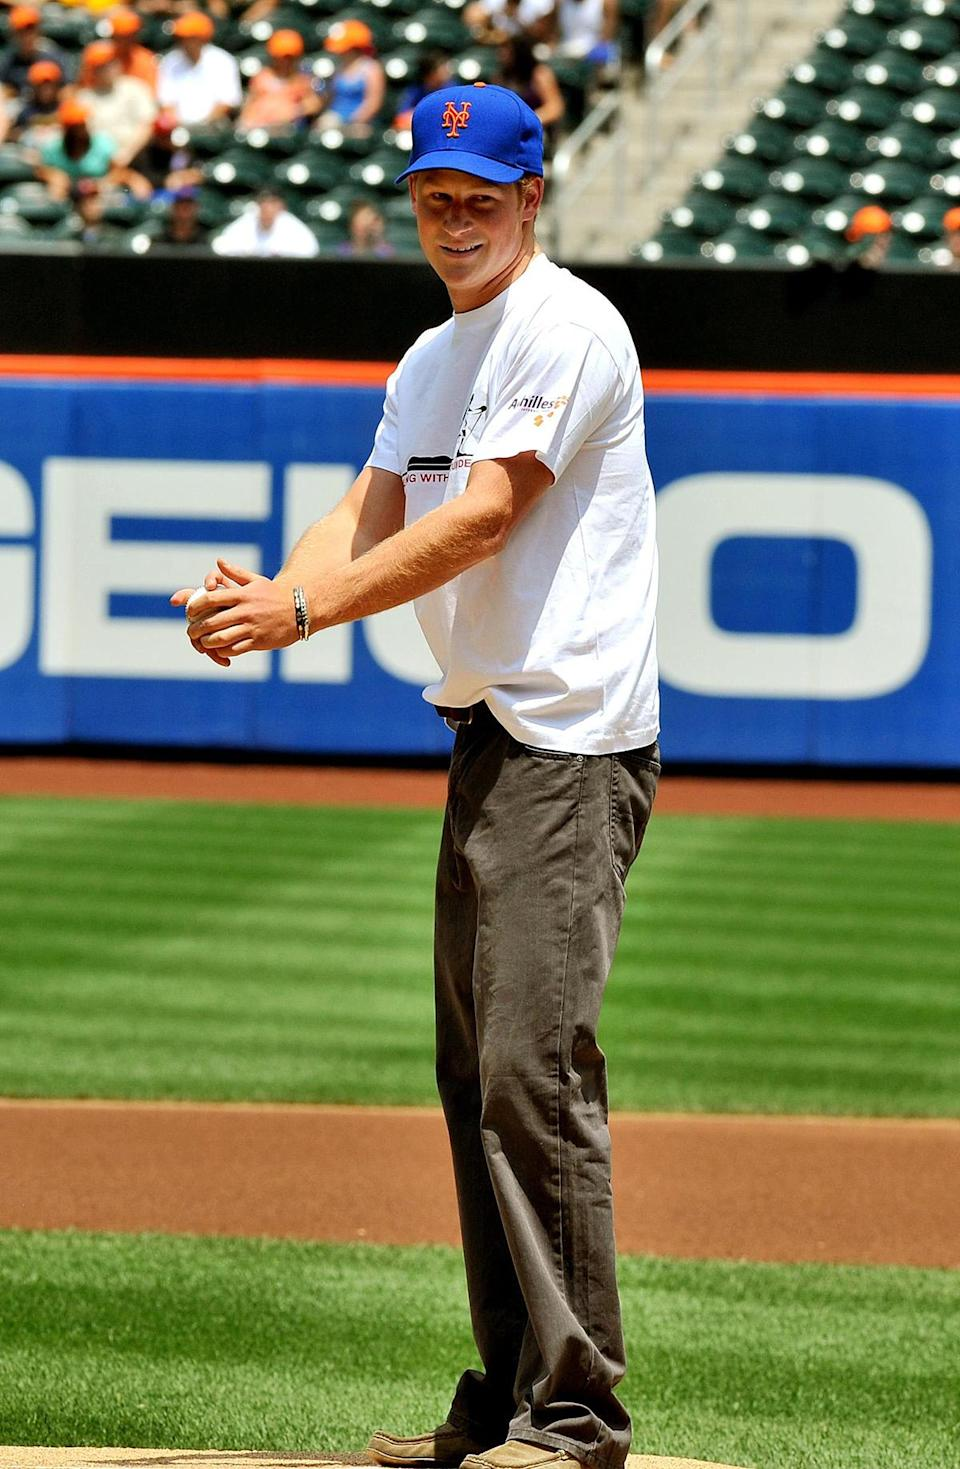 <p>Take Prince Harry out to the ball game! The royal tried his hand at baseball while throwing out the first pitch for the New York Mets in June 2010. </p>